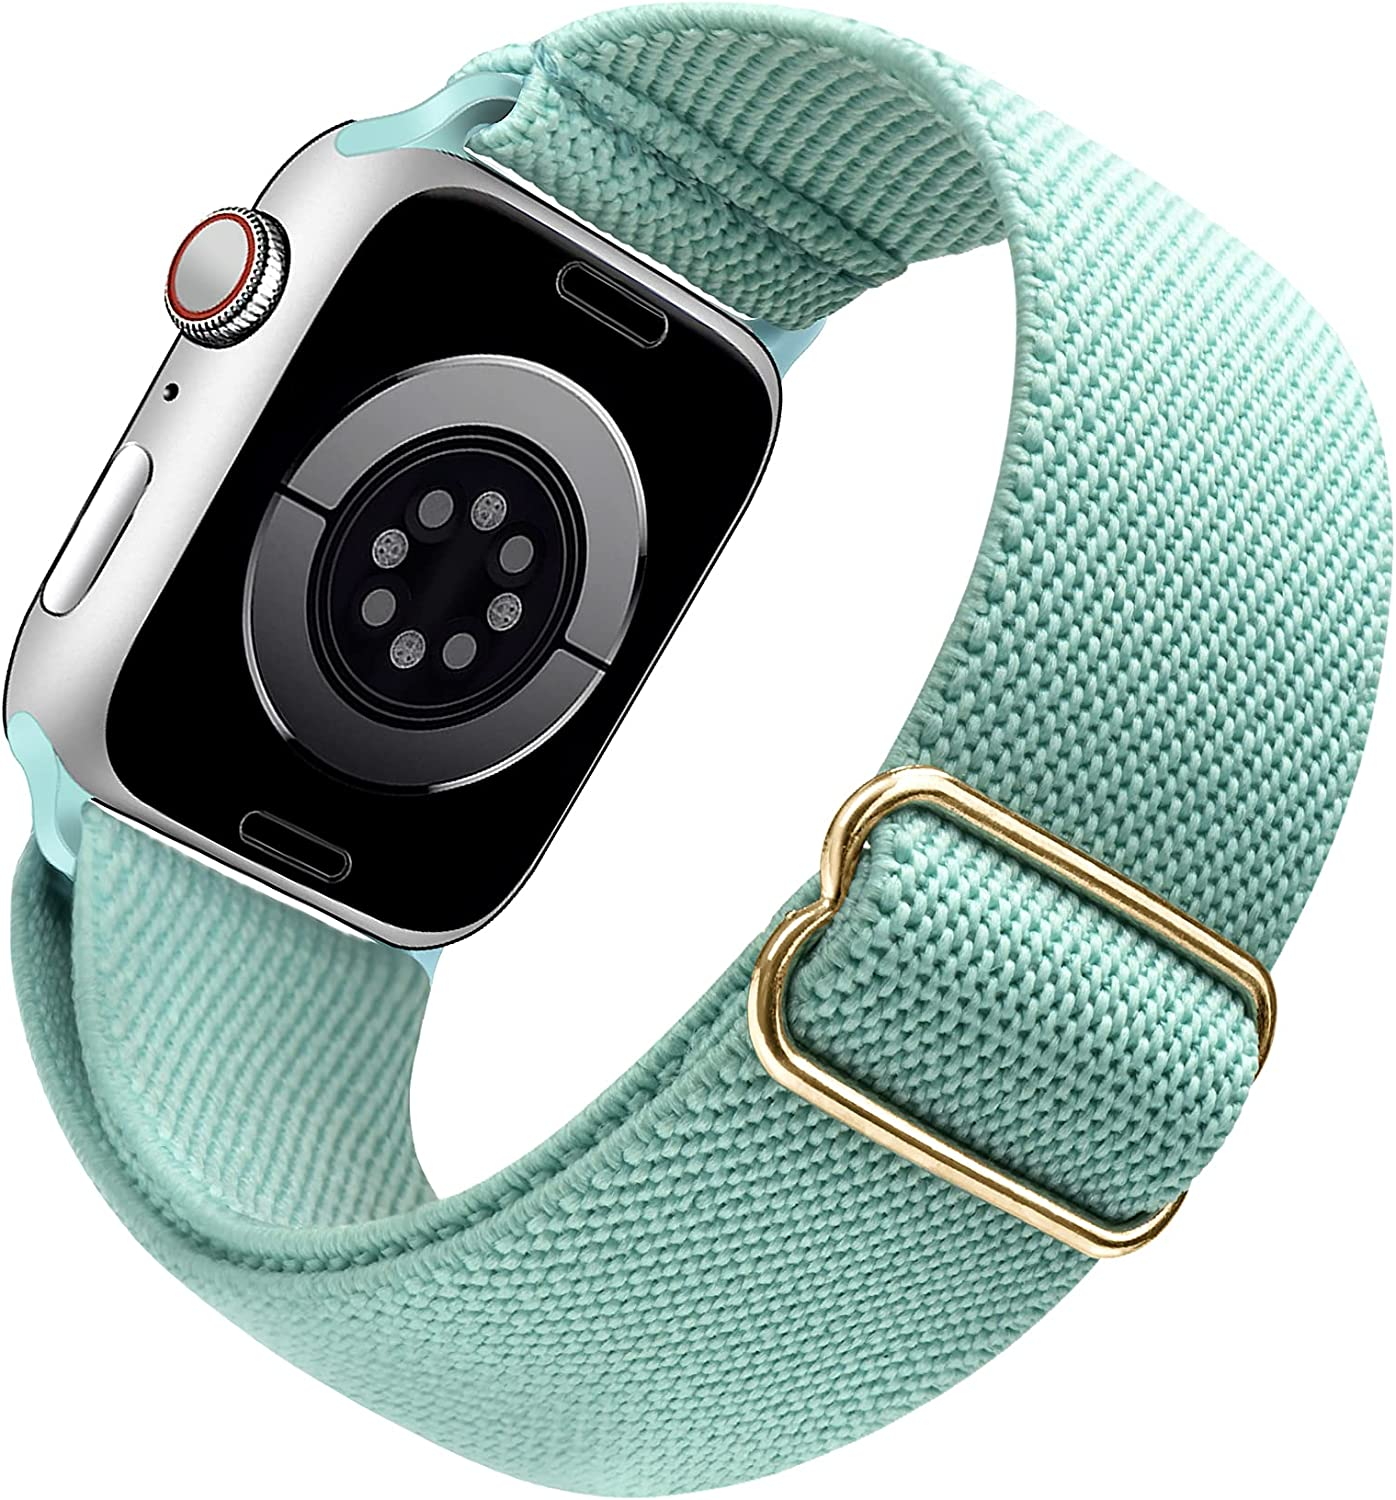 Arae Stretchy Nylon Watch Band Compatible with Apple Watch Band 44mm 42mm Adjustable Elastic Sport Band for iWatch Series 6 5 4 SE 3 2 1 Women Men - Green, 42/44mm